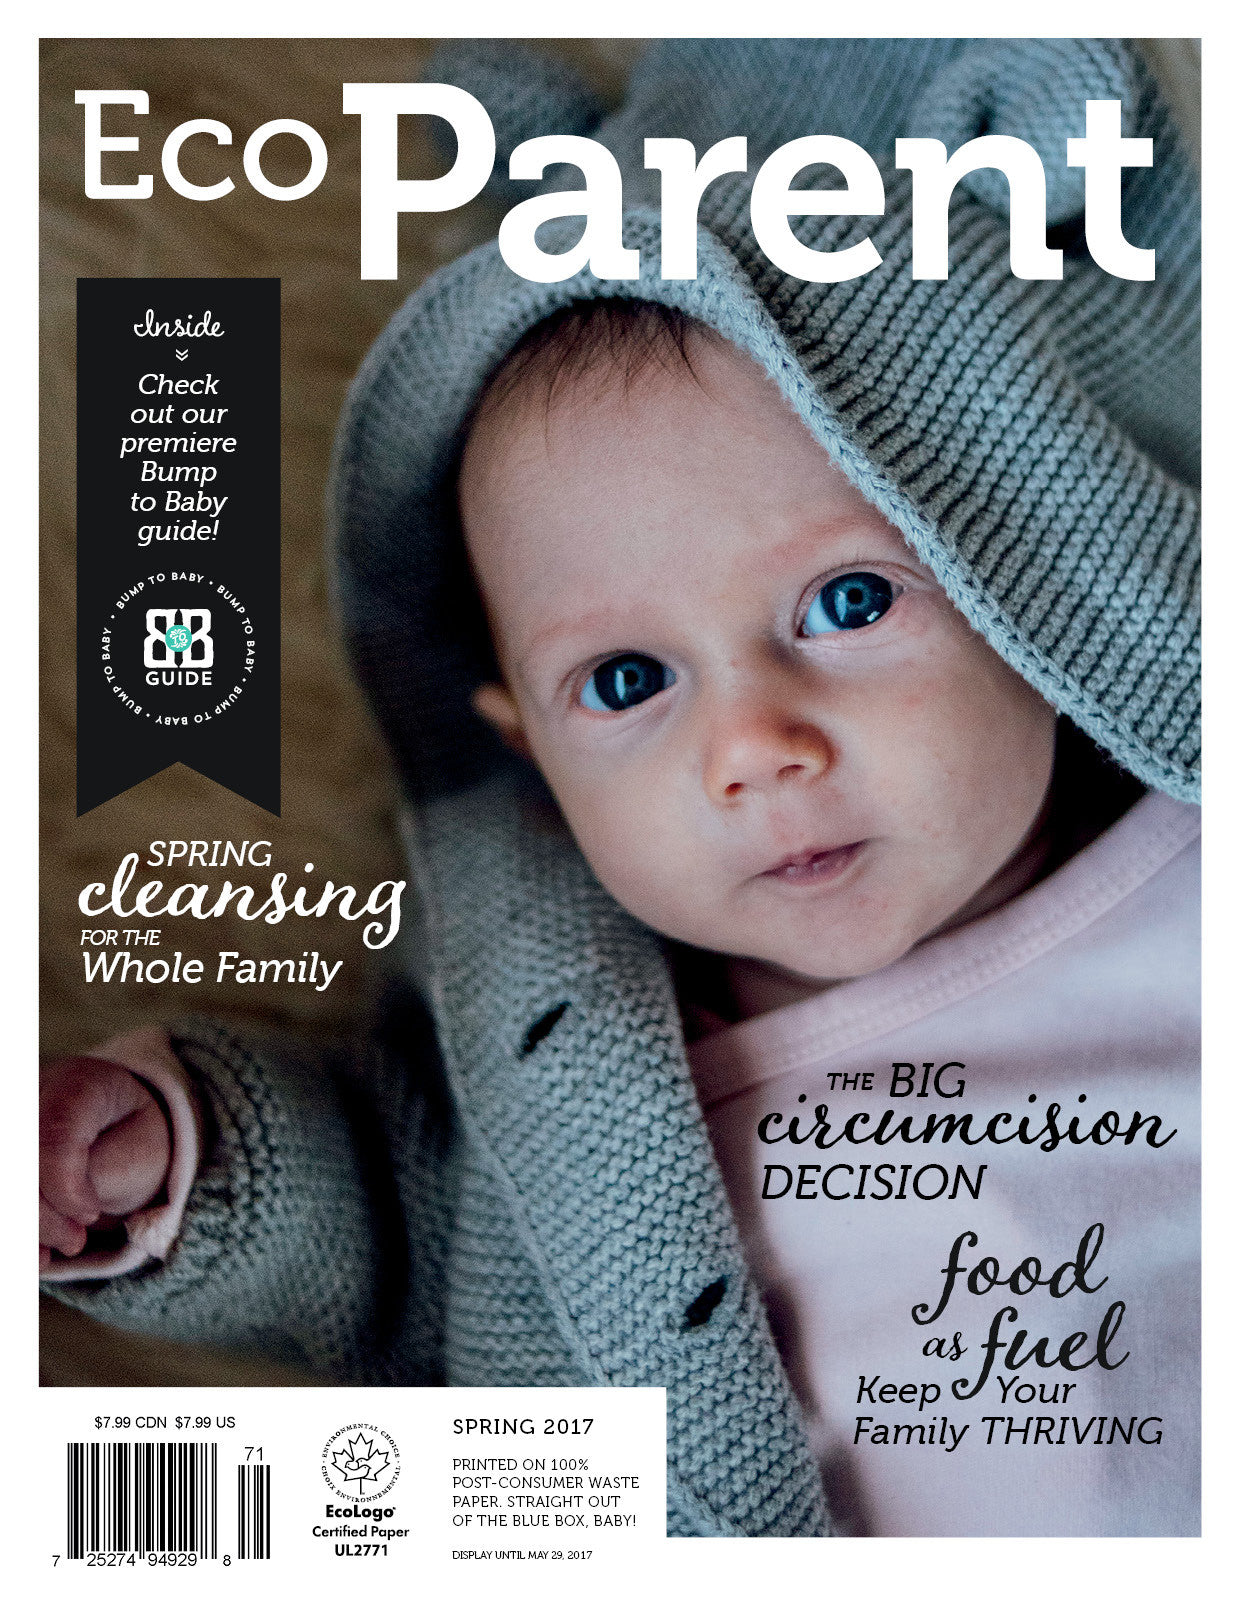 EcoParent Magazine Front Cover With Baby